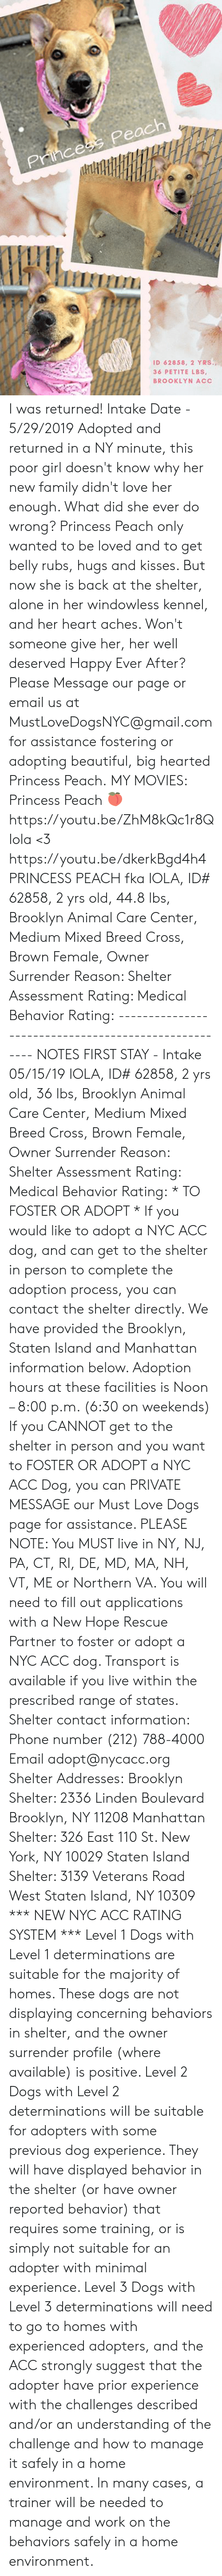 Being Alone, Beautiful, and Dogs: Princess Peach  ID 62858, 2 YRS.,  36 PETITE LBS,  BROOKLYN ACC I was returned!  Intake Date - 5/29/2019   Adopted and returned in a NY minute, this poor girl doesn't know why her new family didn't love her enough.  What did she ever do wrong?   Princess Peach only wanted to be loved and to get belly rubs, hugs and kisses.  But now she is back at the shelter, alone in her windowless kennel, and her heart aches.  Won't someone give her, her well deserved Happy Ever After?  Please Message our page or email us at MustLoveDogsNYC@gmail.com for assistance fostering or adopting beautiful, big hearted Princess Peach.  MY MOVIES:  Princess Peach 🍑  https://youtu.be/ZhM8kQc1r8Q   Iola <3   https://youtu.be/dkerkBgd4h4   PRINCESS PEACH fka IOLA, ID# 62858, 2 yrs old, 44.8 lbs, Brooklyn Animal Care Center, Medium Mixed Breed Cross, Brown Female,  Owner Surrender Reason:  Shelter Assessment Rating:  Medical Behavior Rating: ----------------------------------------------------- NOTES FIRST STAY - Intake 05/15/19  IOLA, ID# 62858, 2 yrs old, 36 lbs, Brooklyn Animal Care Center, Medium Mixed Breed Cross, Brown Female,  Owner Surrender Reason:  Shelter Assessment Rating:  Medical Behavior Rating:  * TO FOSTER OR ADOPT *   If you would like to adopt a NYC ACC dog, and can get to the shelter in person to complete the adoption process, you can contact the shelter directly. We have provided the Brooklyn, Staten Island and Manhattan information below. Adoption hours at these facilities is Noon – 8:00 p.m. (6:30 on weekends)  If you CANNOT get to the shelter in person and you want to FOSTER OR ADOPT a NYC ACC Dog, you can PRIVATE MESSAGE our Must Love Dogs page for assistance. PLEASE NOTE: You MUST live in NY, NJ, PA, CT, RI, DE, MD, MA, NH, VT, ME or Northern VA. You will need to fill out applications with a New Hope Rescue Partner to foster or adopt a NYC ACC dog. Transport is available if you live within the prescribed range of states.  Shelter contact information: Phone number (212) 788-4000 Email adopt@nycacc.org  Shelter Addresses: Brooklyn Shelter: 2336 Linden Boulevard Brooklyn, NY 11208 Manhattan Shelter: 326 East 110 St. New York, NY 10029 Staten Island Shelter: 3139 Veterans Road West Staten Island, NY 10309  *** NEW NYC ACC RATING SYSTEM ***  Level 1 Dogs with Level 1 determinations are suitable for the majority of homes. These dogs are not displaying concerning behaviors in shelter, and the owner surrender profile (where available) is positive.  Level 2   Dogs with Level 2 determinations will be suitable for adopters with some previous dog experience. They will have displayed behavior in the shelter (or have owner reported behavior) that requires some training, or is simply not suitable for an adopter with minimal experience.  Level 3  Dogs with Level 3 determinations will need to go to homes with experienced adopters, and the ACC strongly suggest that the adopter have prior experience with the challenges described and/or an understanding of the challenge and how to manage it safely in a home environment. In many cases, a trainer will be needed to manage and work on the behaviors safely in a home environment.